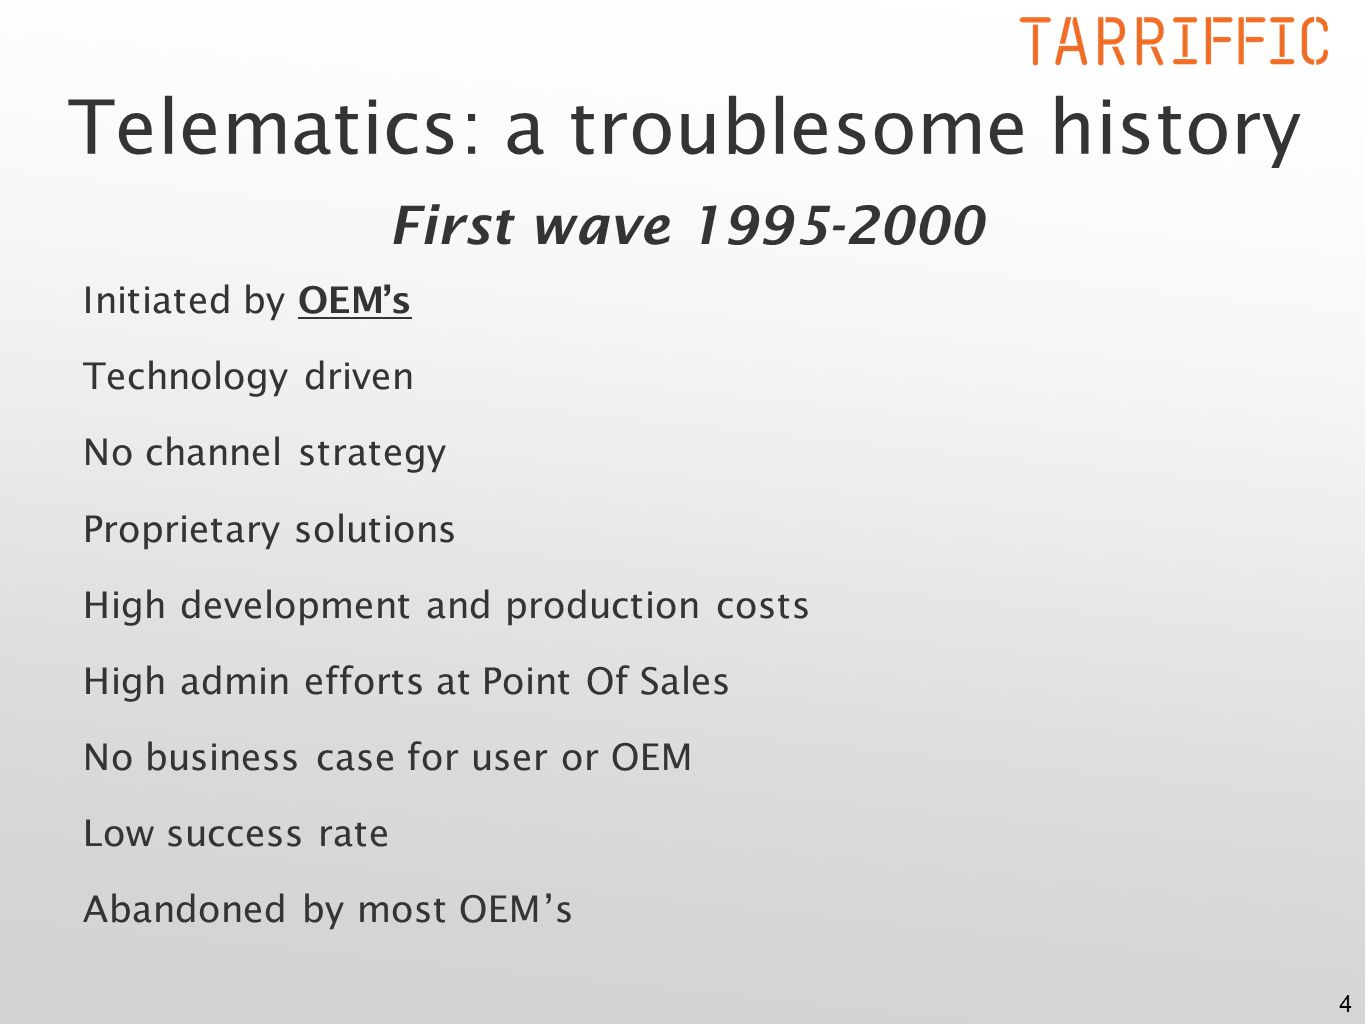 4 Telematics: a troublesome history First wave 1995-2000 Initiated by OEM's Technology driven No channel strategy Proprietary solutions High development and production costs High admin efforts at Point Of Sales No business case for user or OEM Low success rate Abandoned by most OEM's